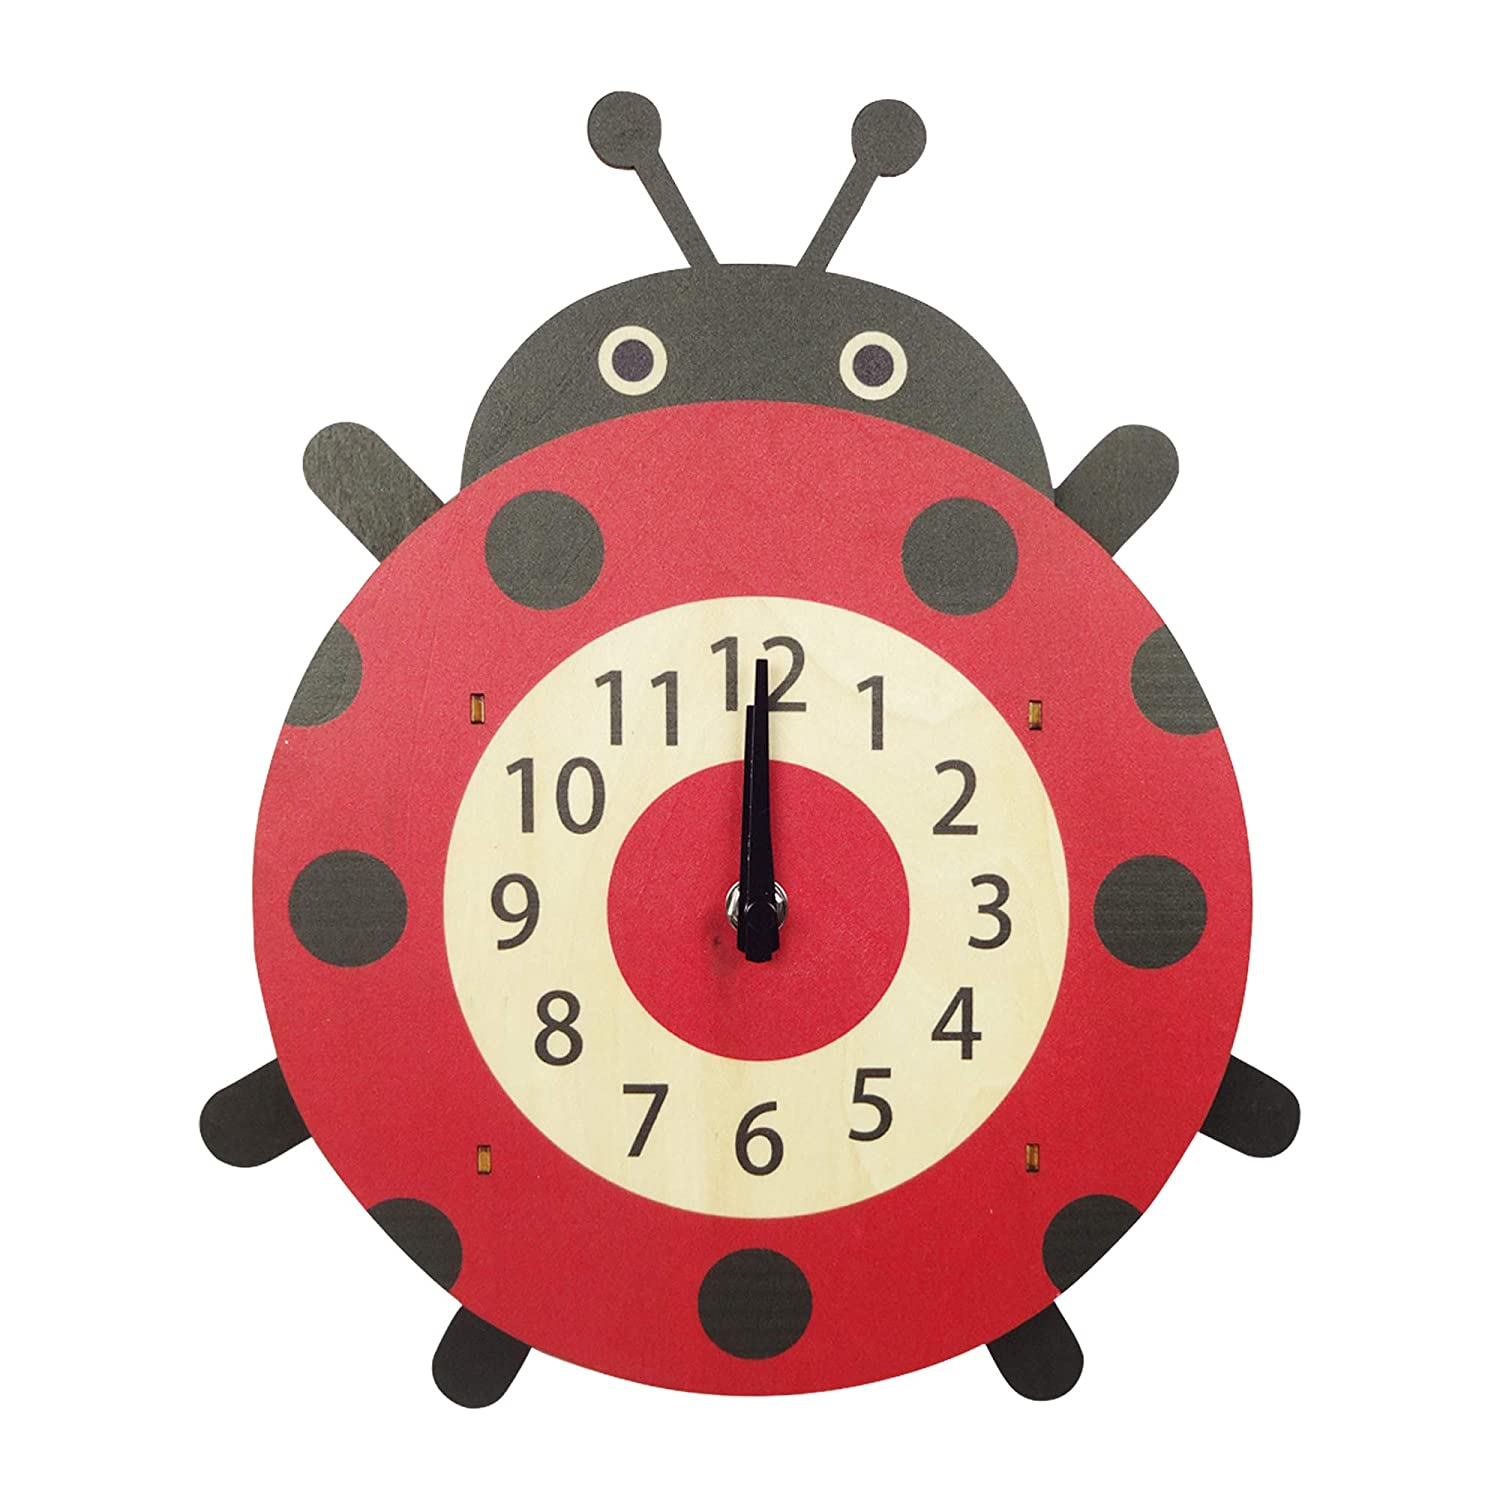 Buy Bag Of Small Things Wood Beetle Design Pendulum Wall Clock Animal Beetle 12 5 Inch X 1 3 Inch X 7 8 Inch Online At Low Prices In India Amazon In